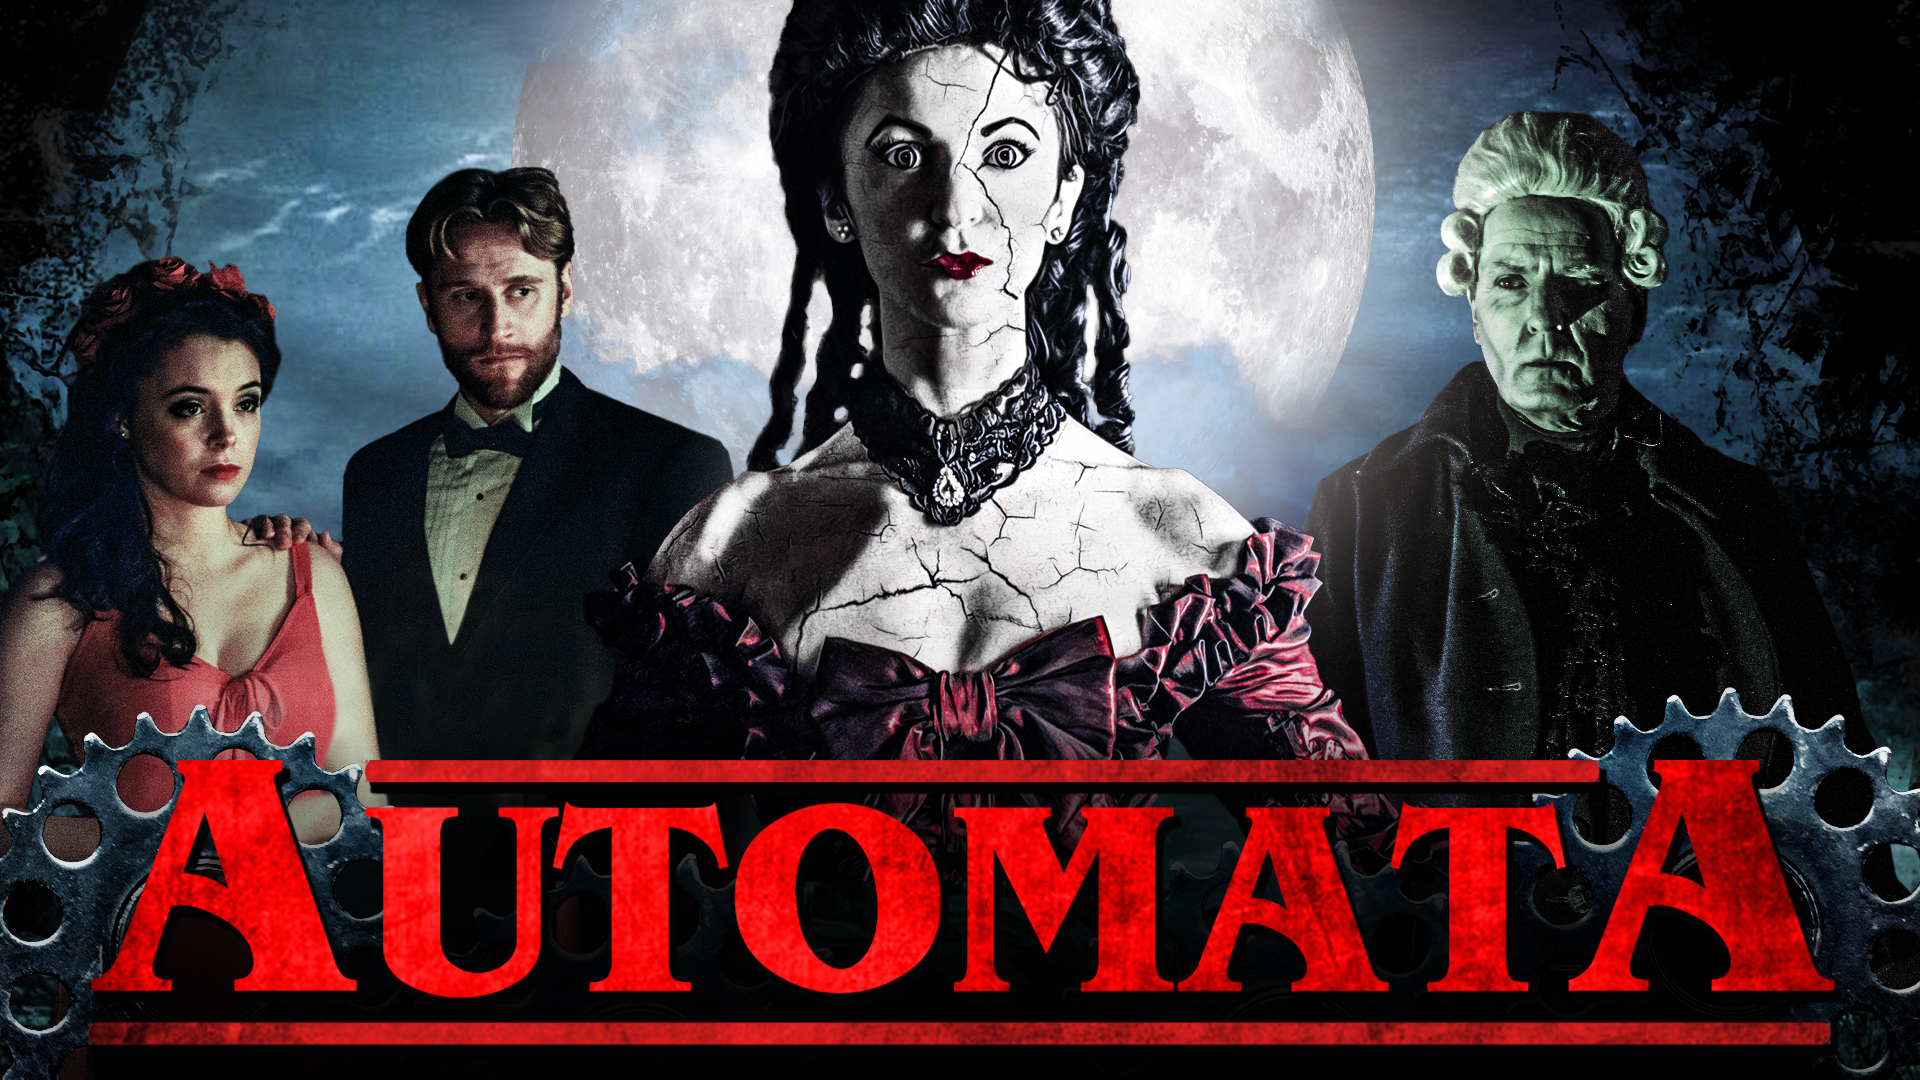 'Automata' Set To Spring To Life After Record-Breaking Crowdfunder